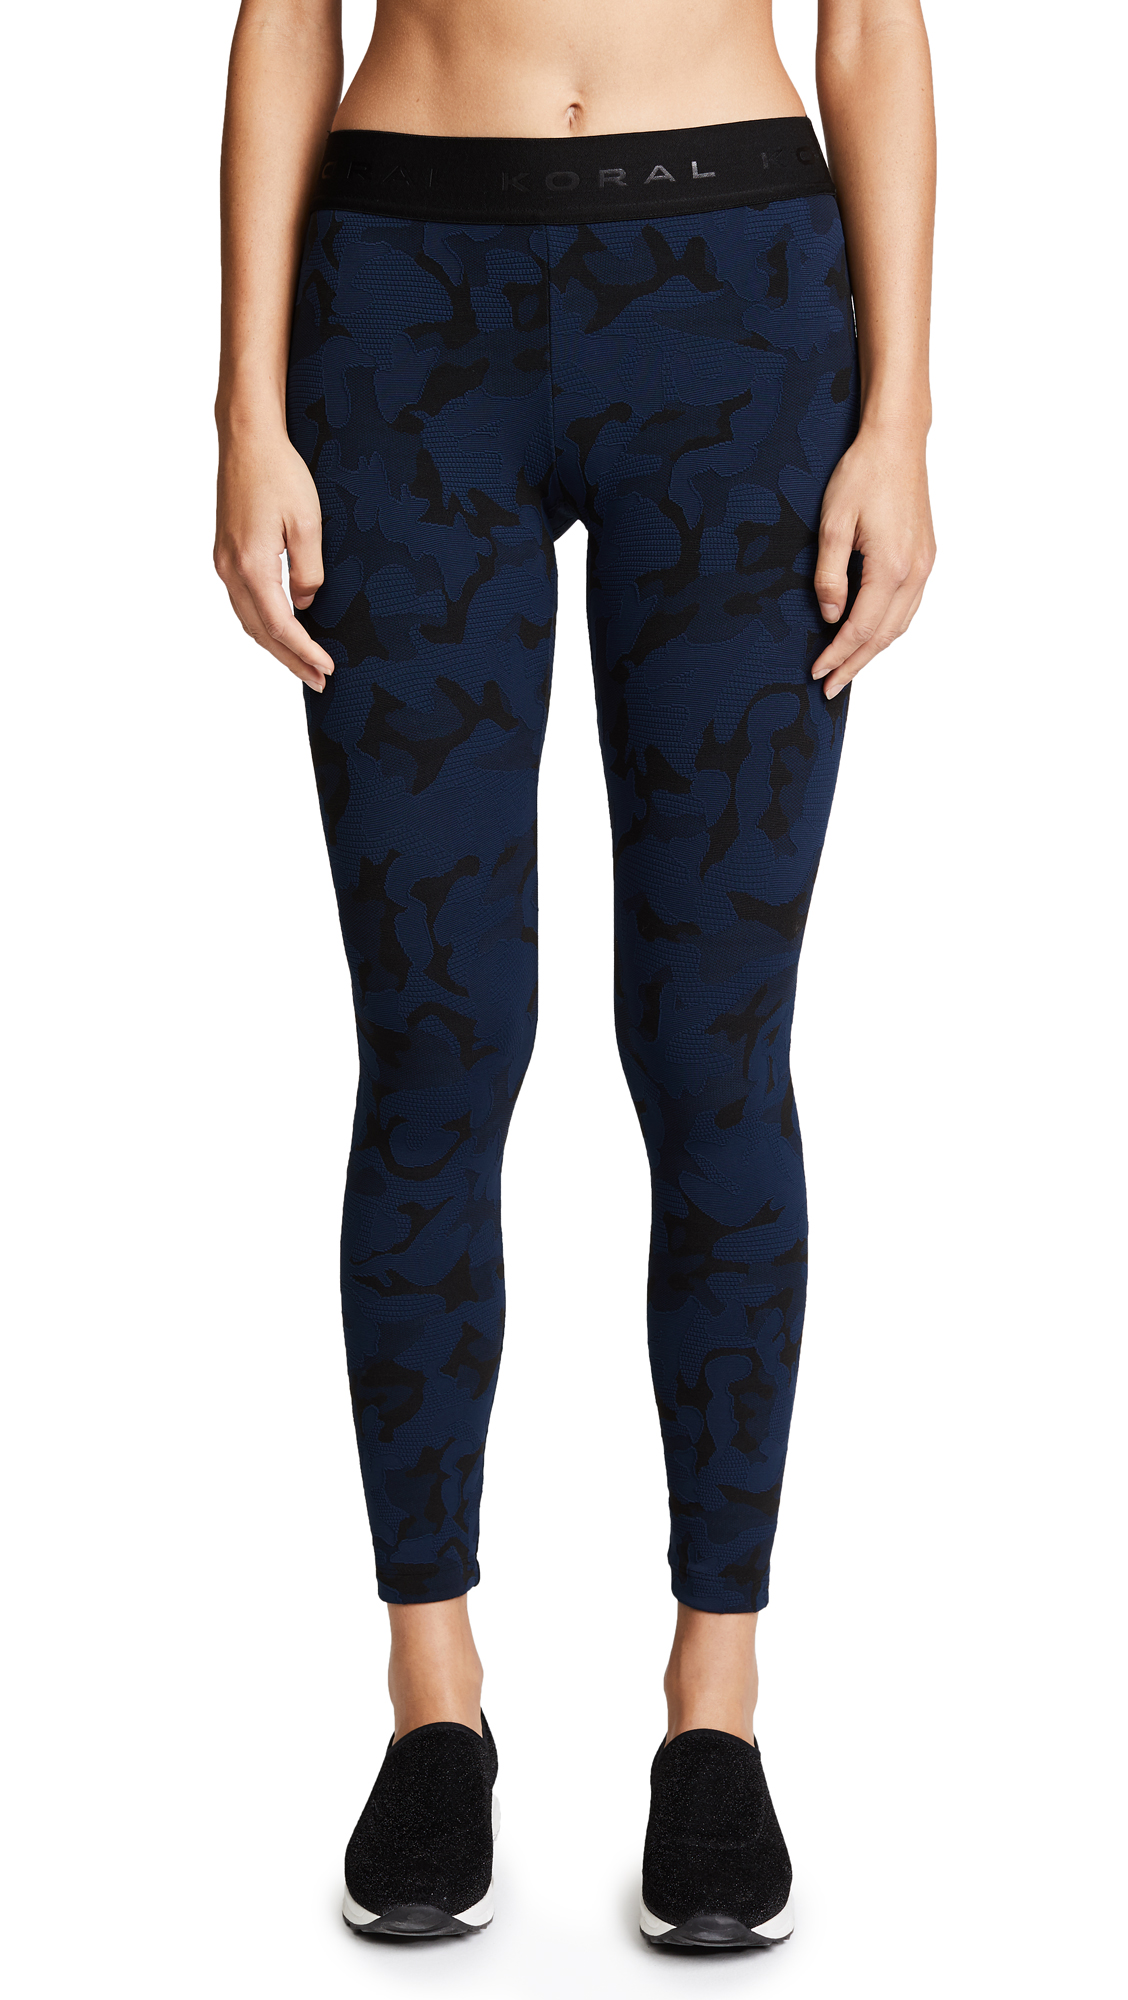 KORAL ACTIVEWEAR Knockout Cropped Leggings - Midnight Blue Camo/Black